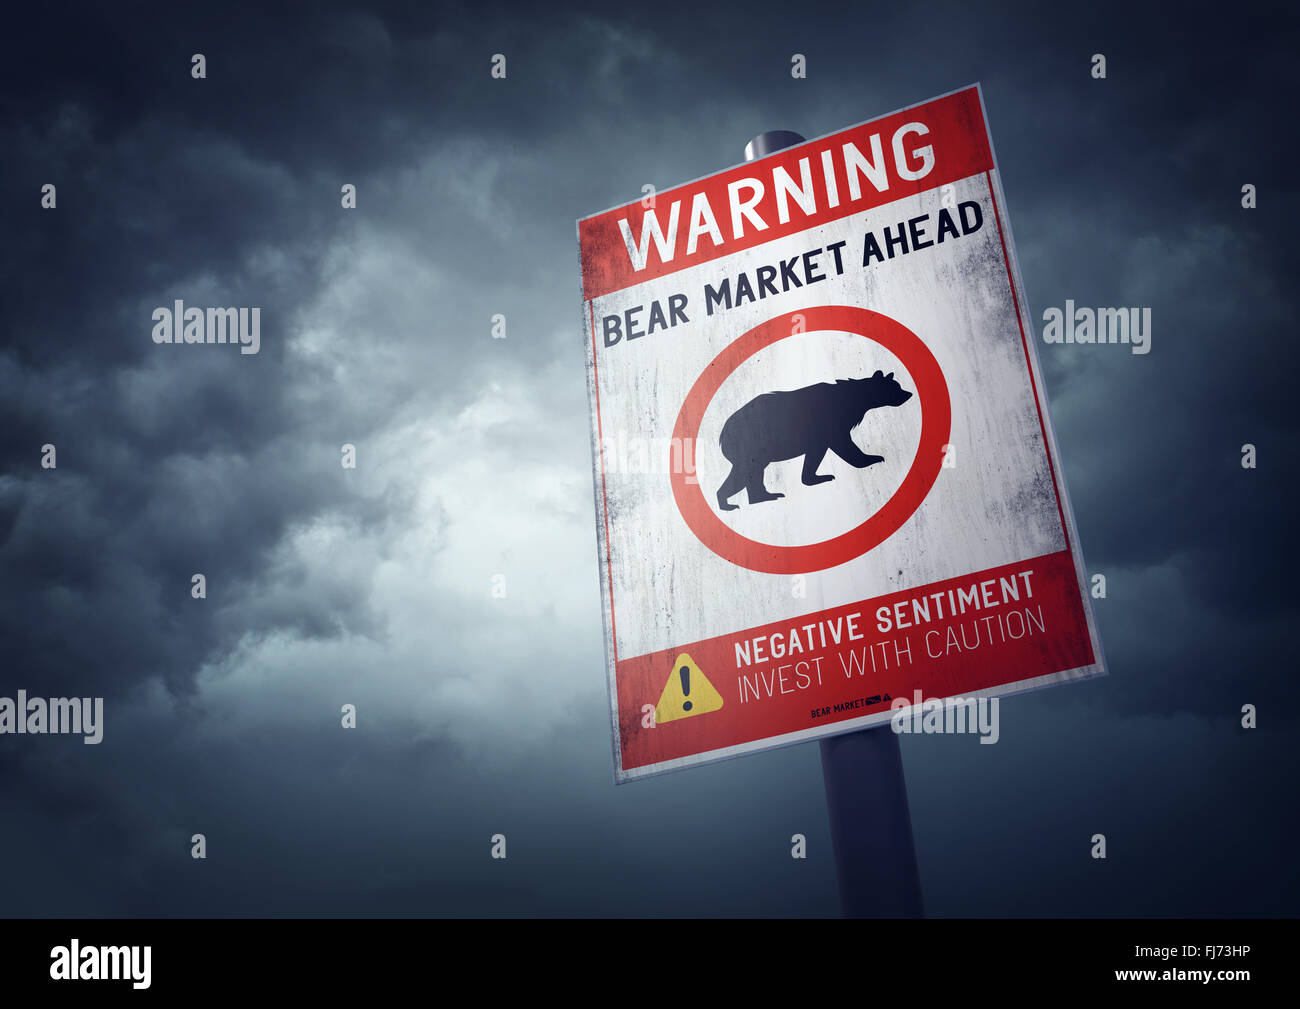 Bear stock market warning sign with growing storm clouds. - Stock Image